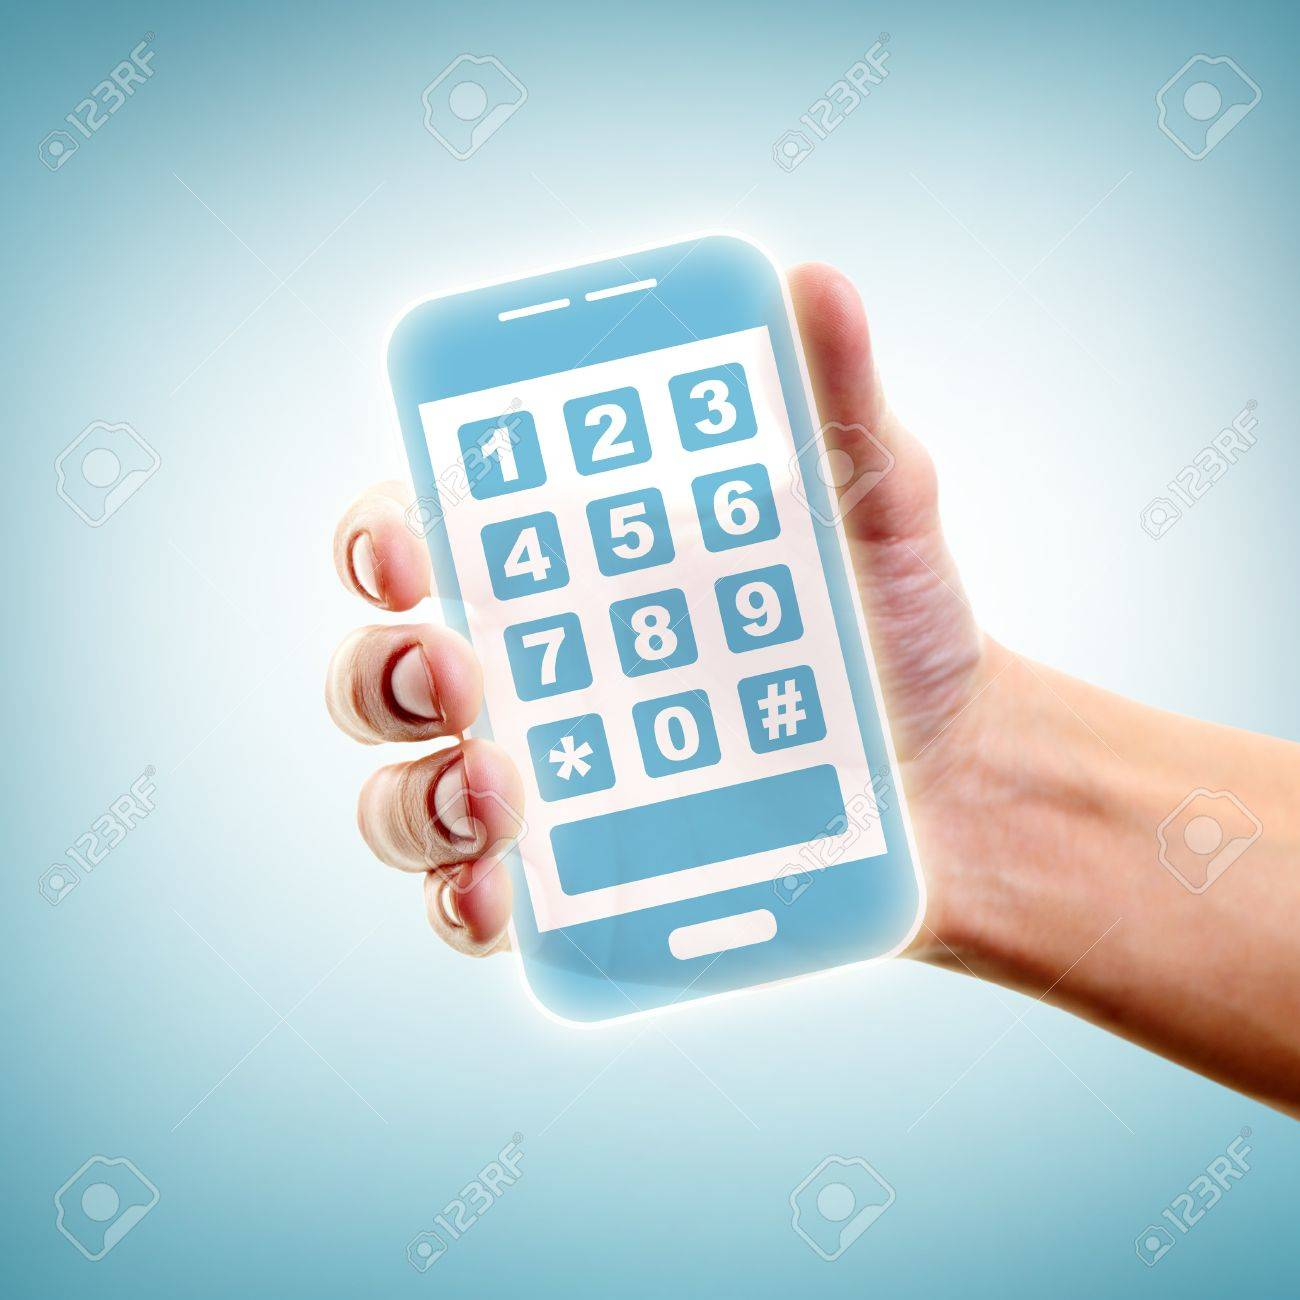 Human hand holding and showing smartphone Stock Photo - 13949129